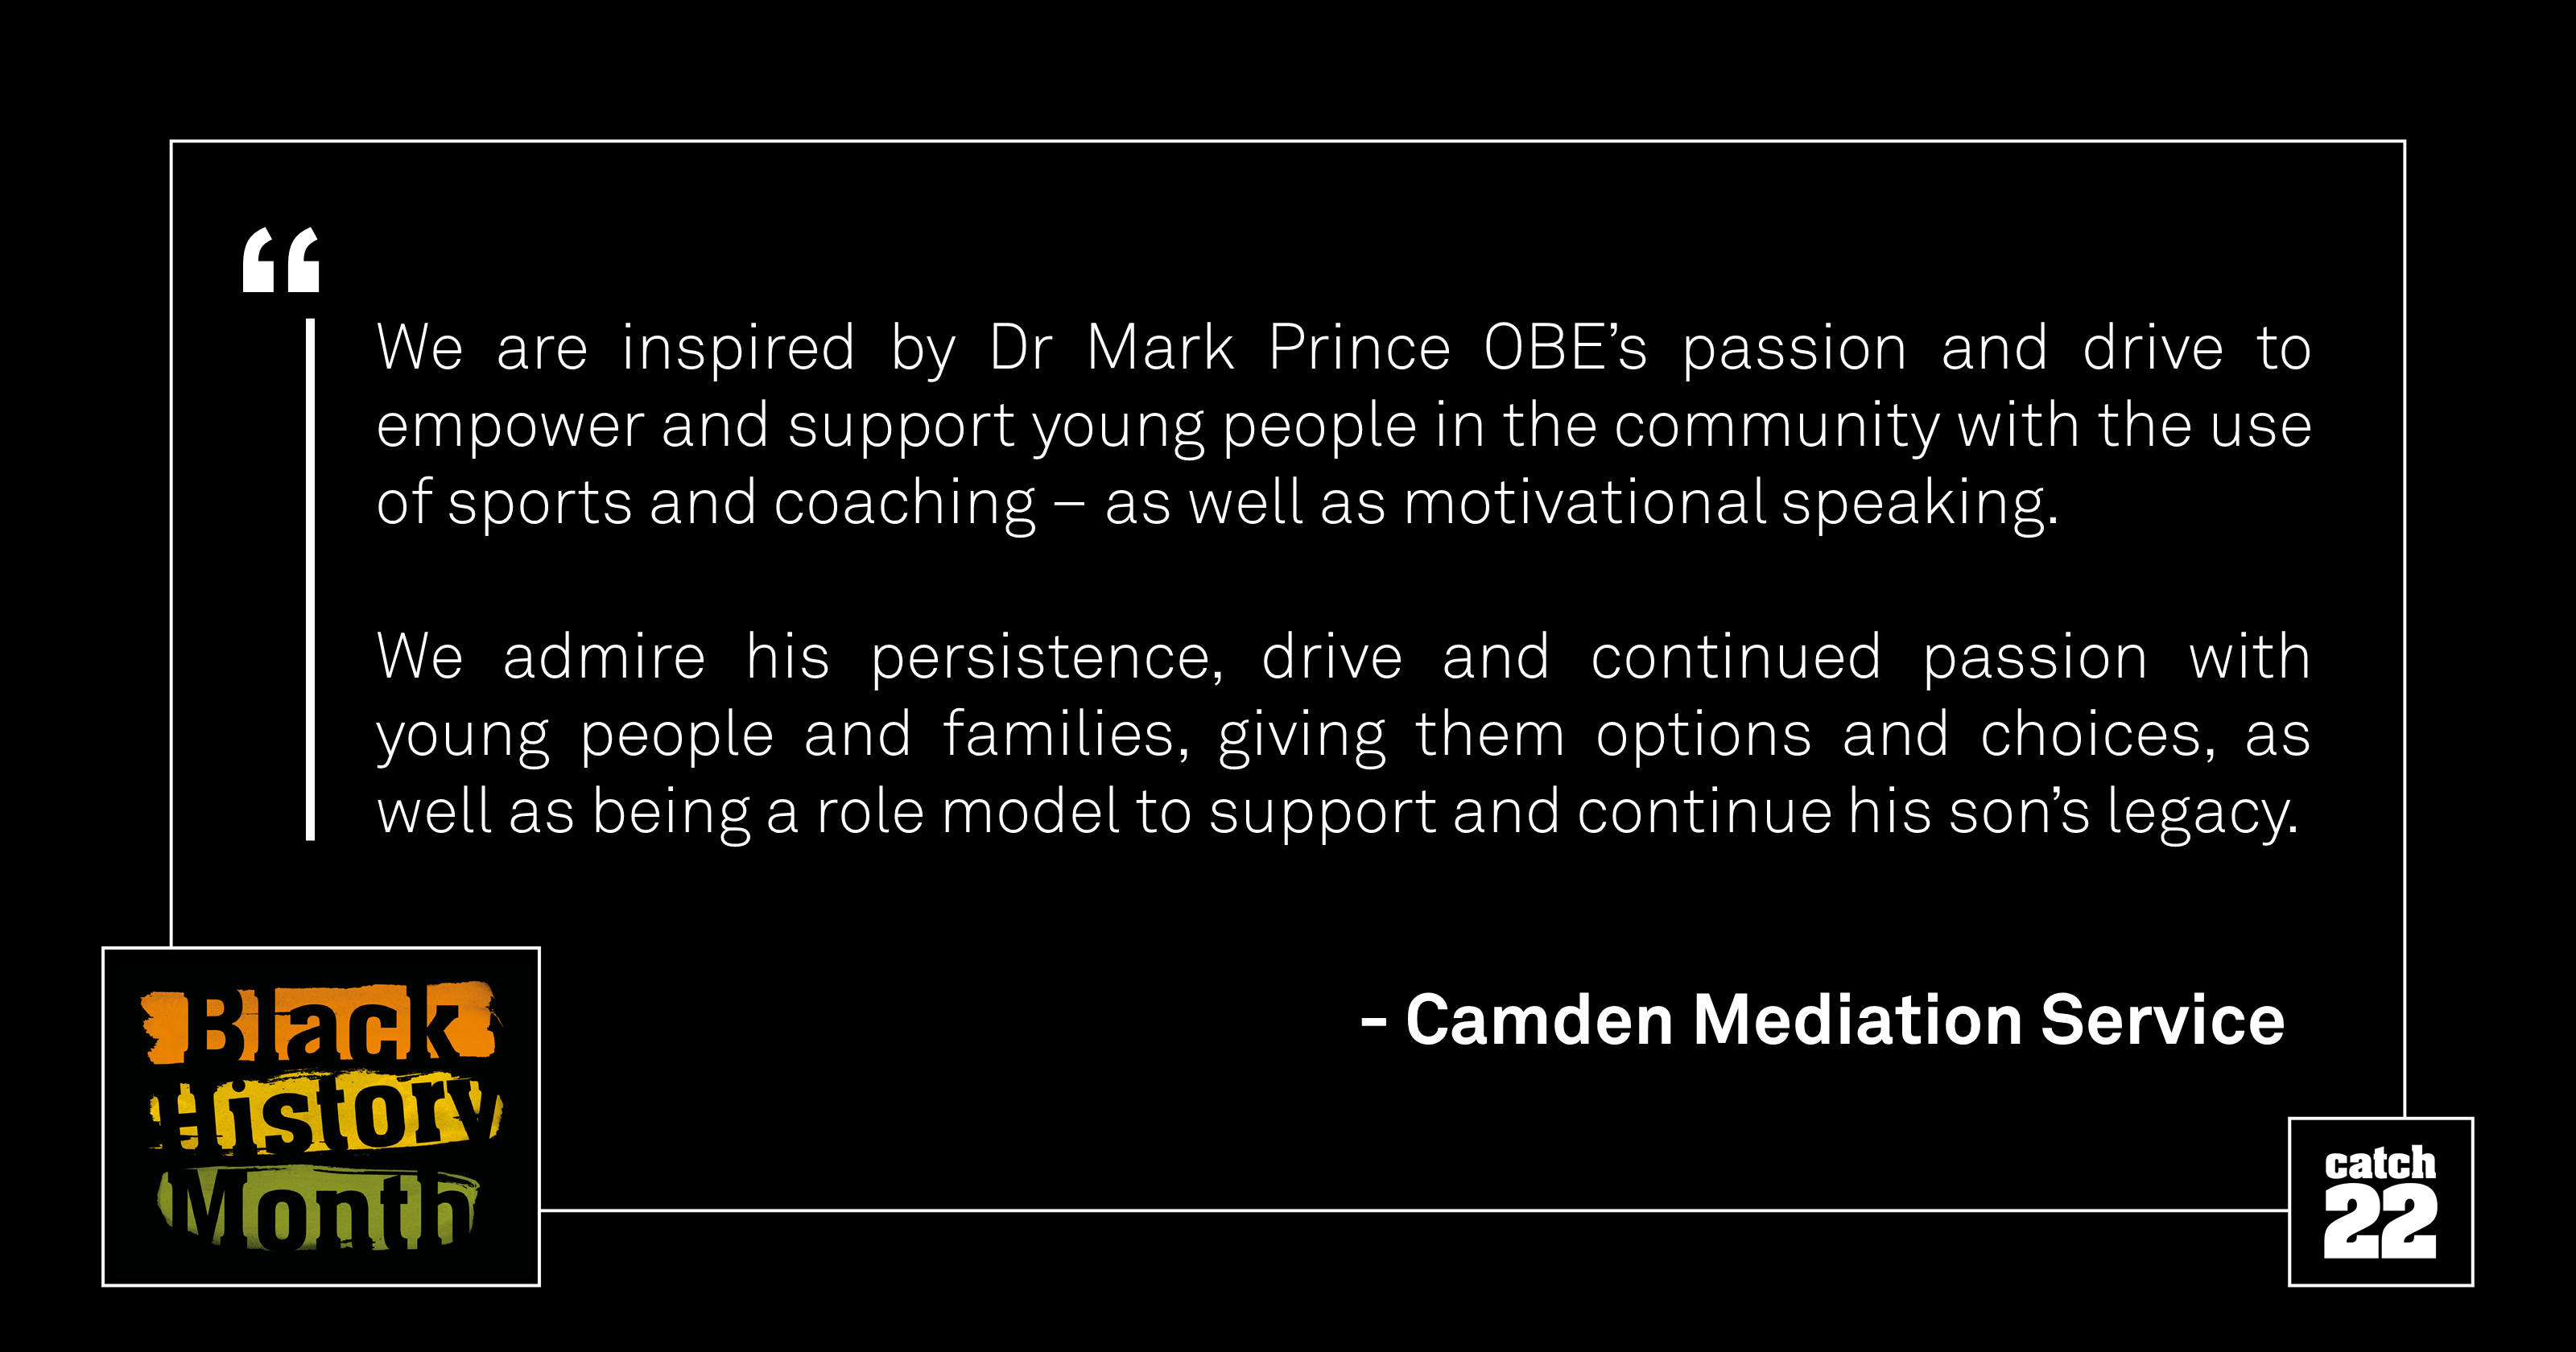 We are inspired by Dr Mark Prince OBE's passion and drive to empower and support young people in the community with the use of sports and coaching – as well as motivational speaking. We admire his persistence, drive and continued passion with young people and families, giving them options and choices, as well as being a role model to support and continue his son's legacy.